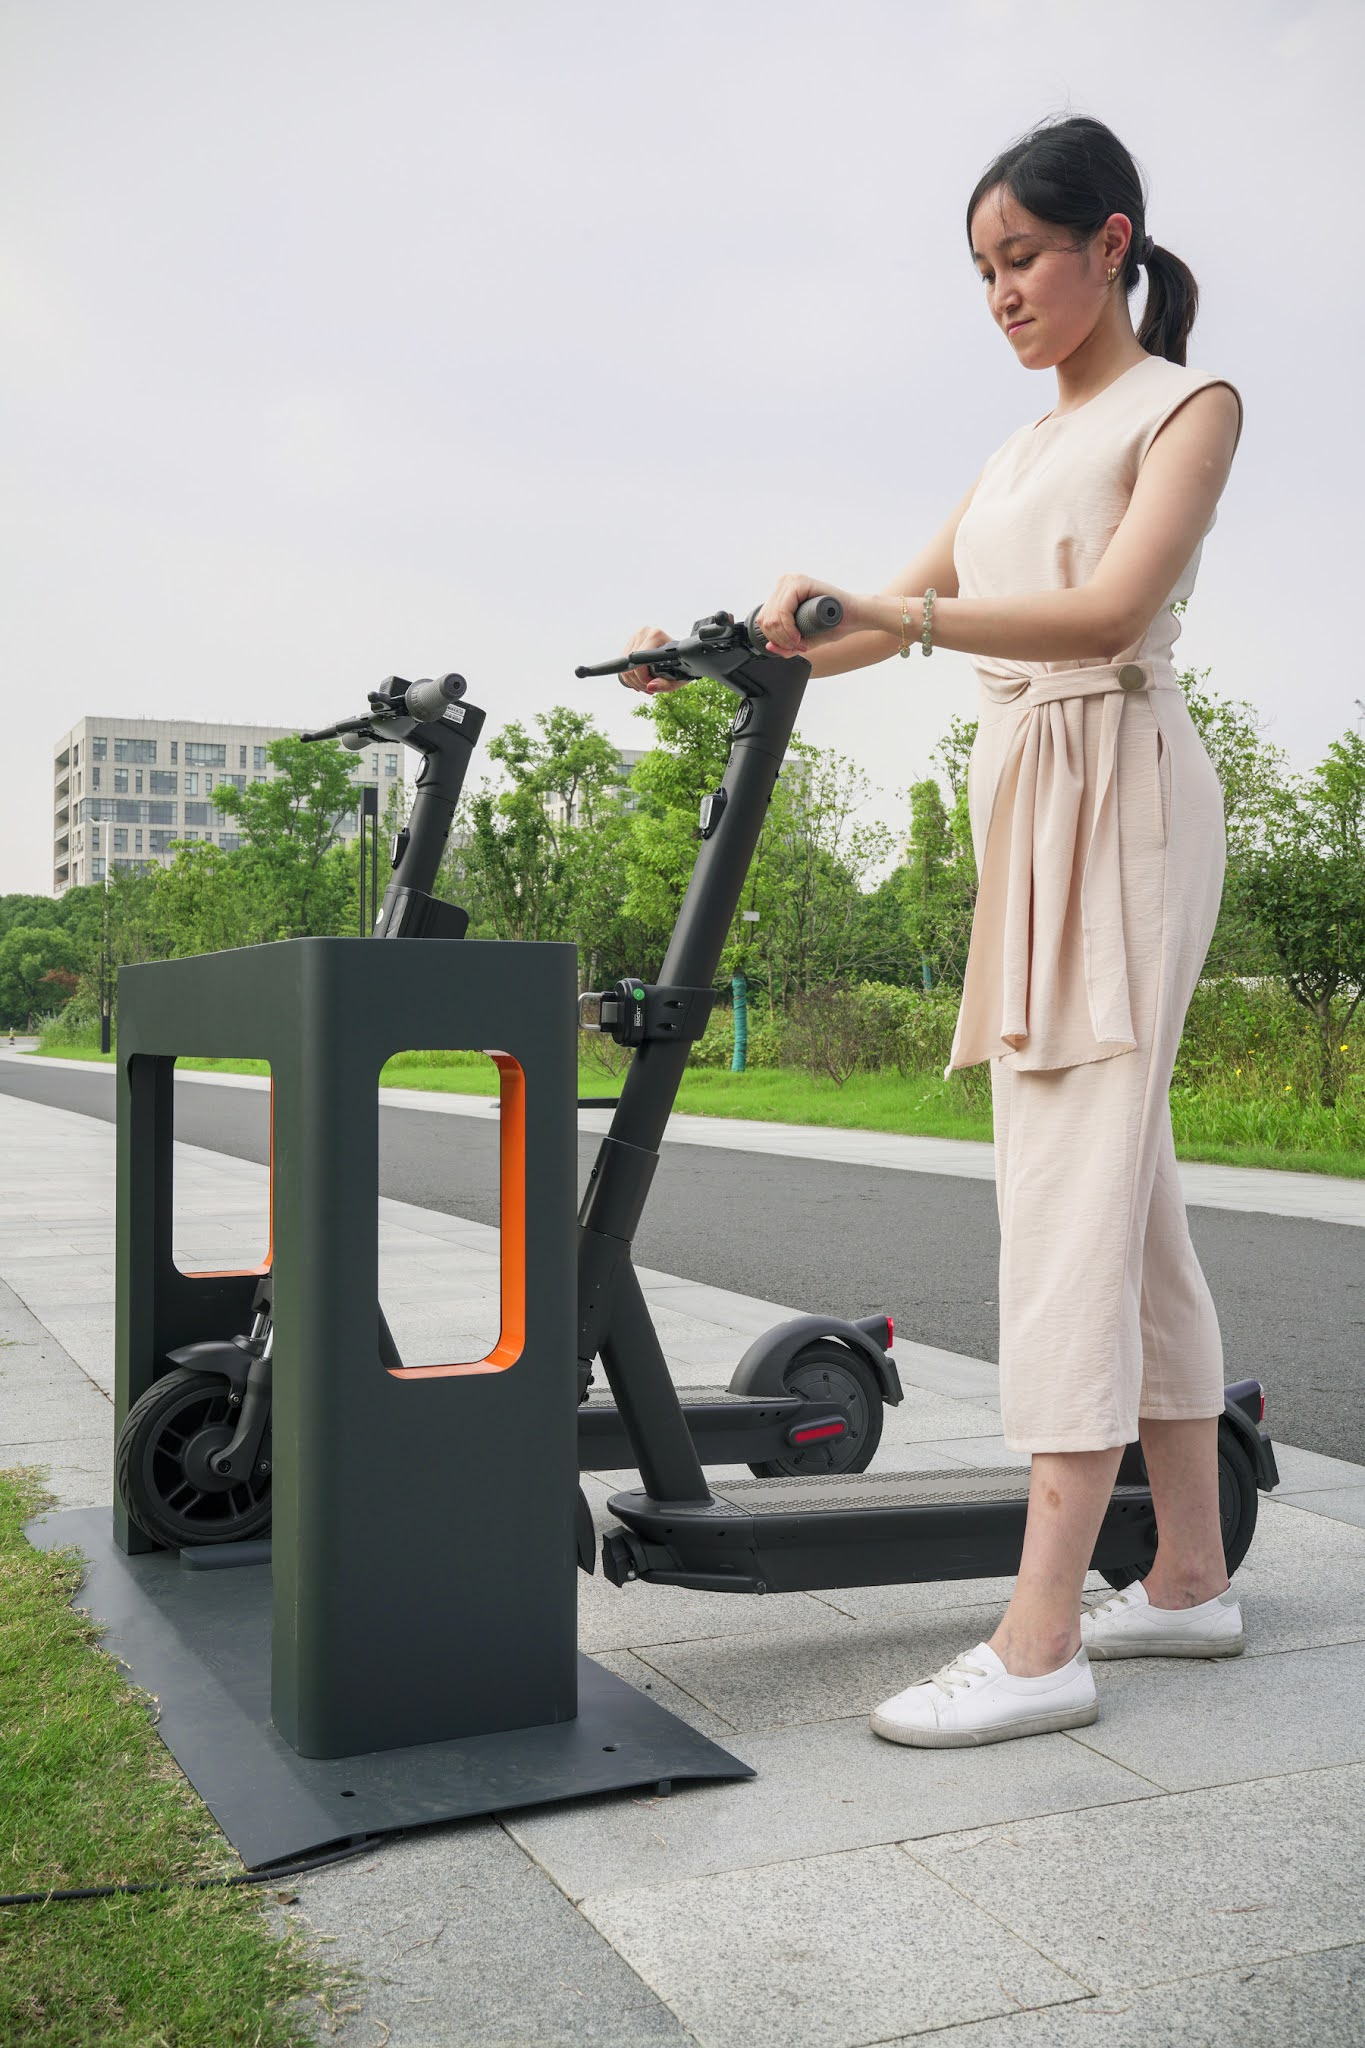 Segway-Ninebot and DUCKT join forces to set new micromobility infrastructure standards